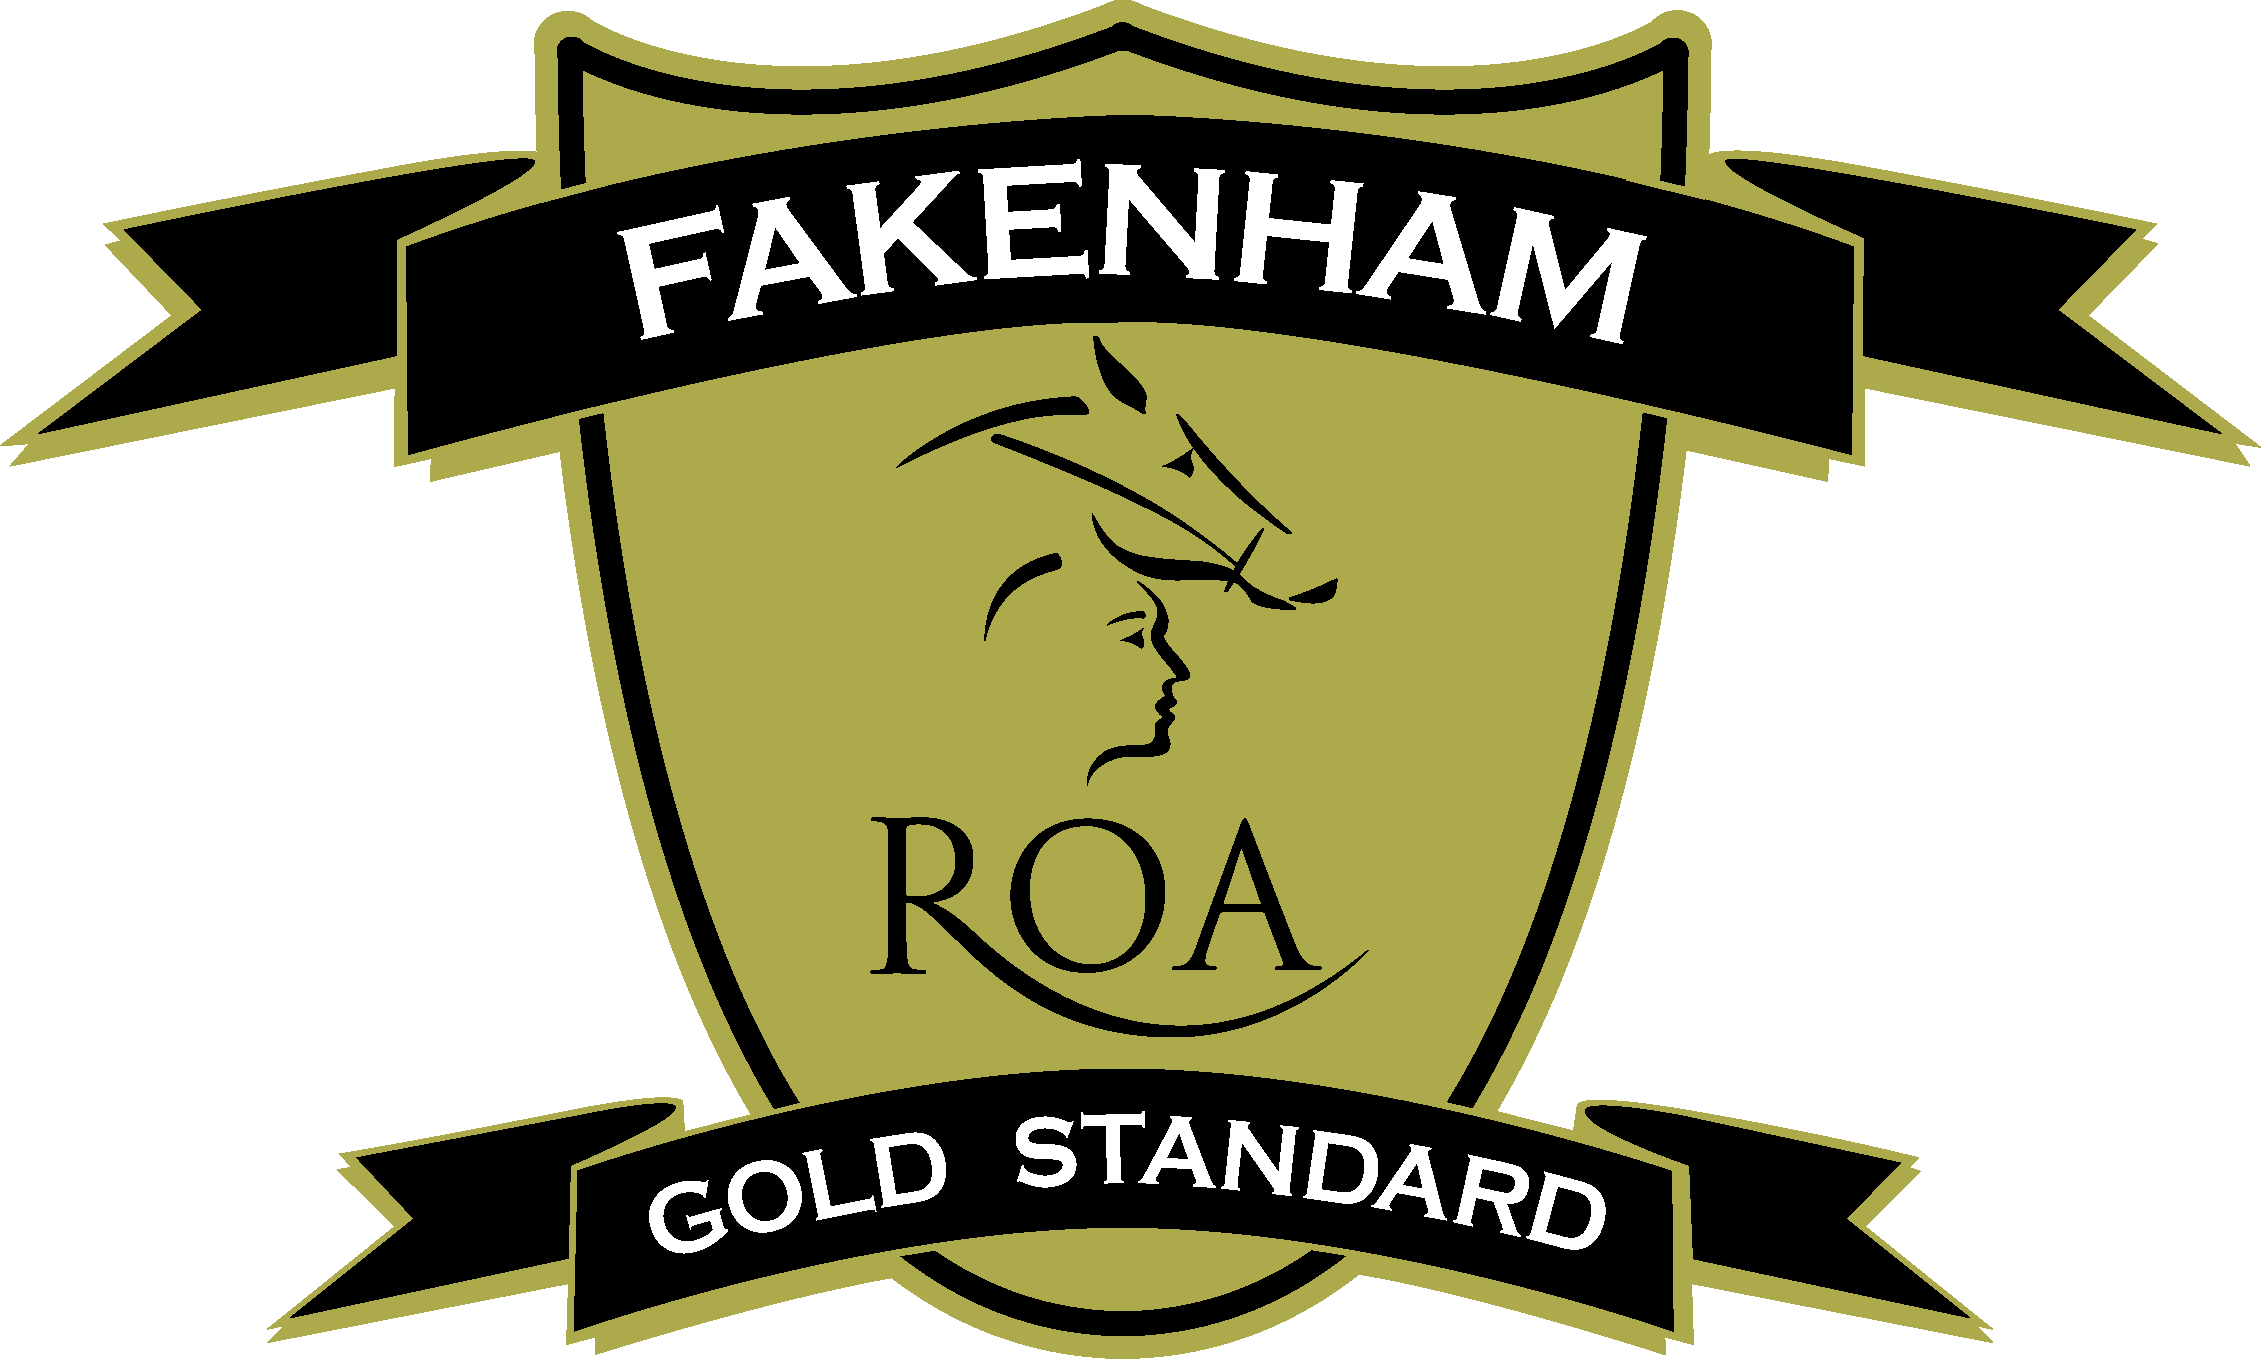 Fakenham Racecourse gets Gold Standard by ROA